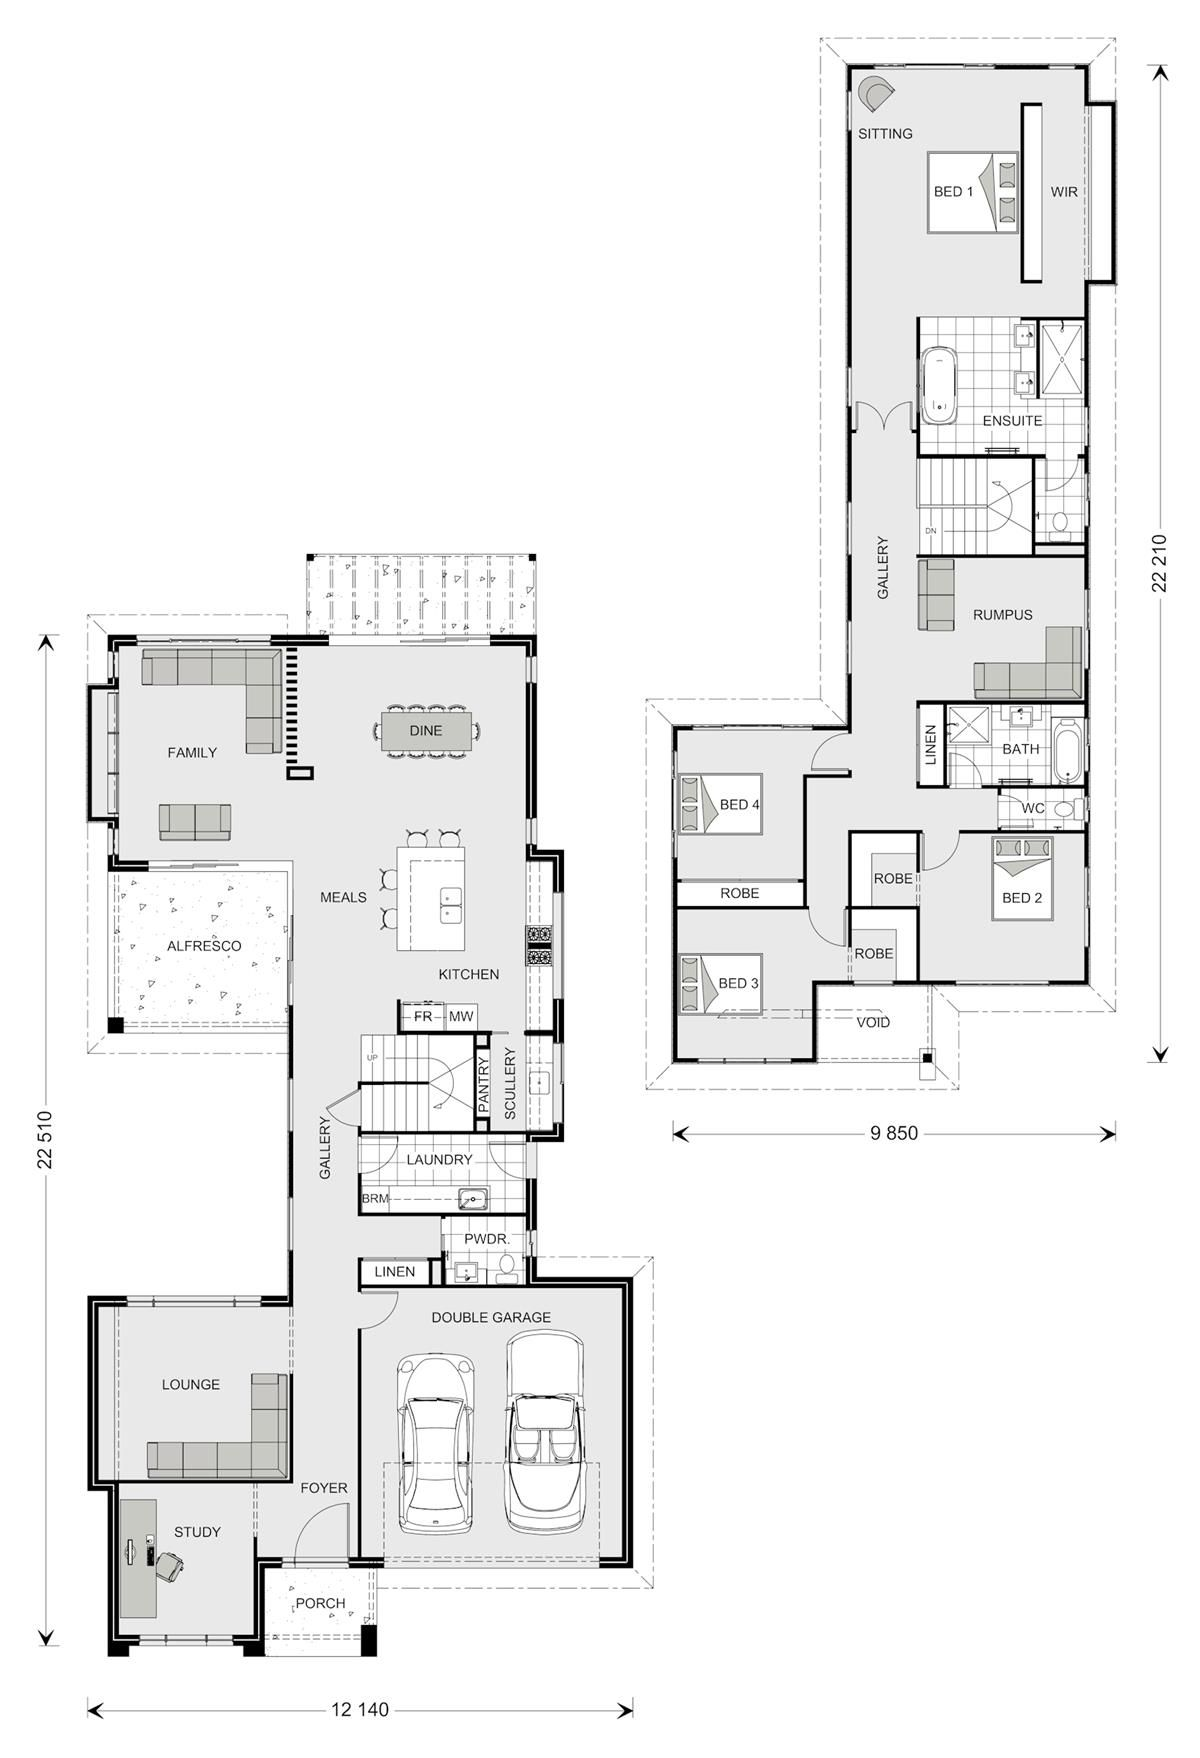 Galleria 352, Our Designs, Queensland Builder, GJ Gardner Homes ...